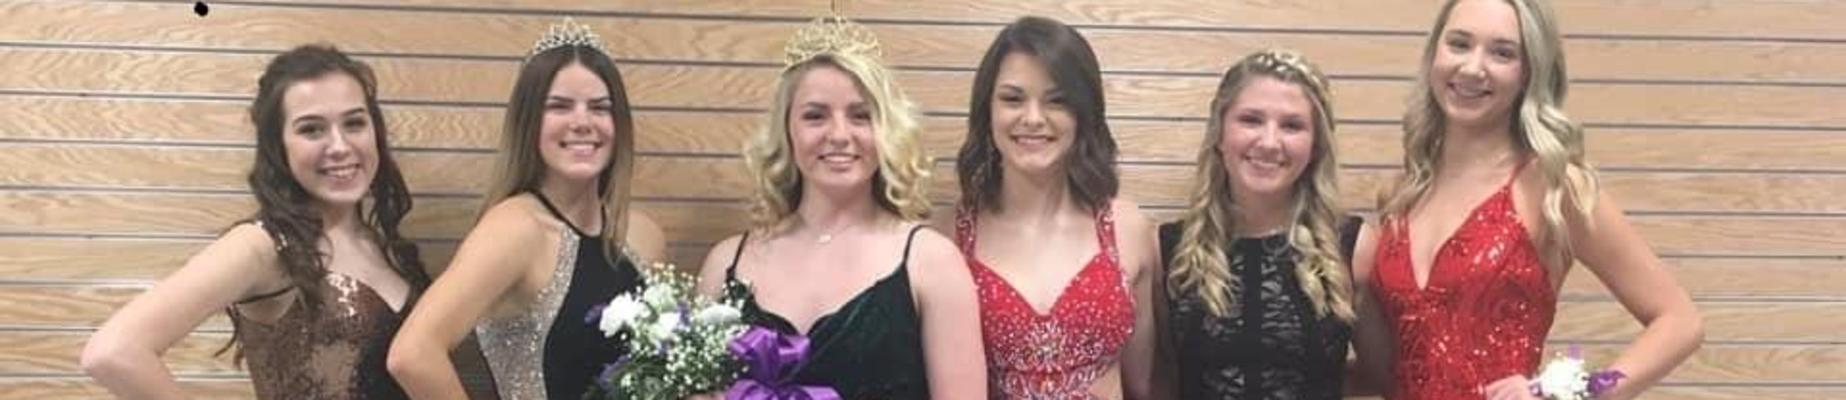 Paige Hicks crowned 2020 Courtwarming Queen